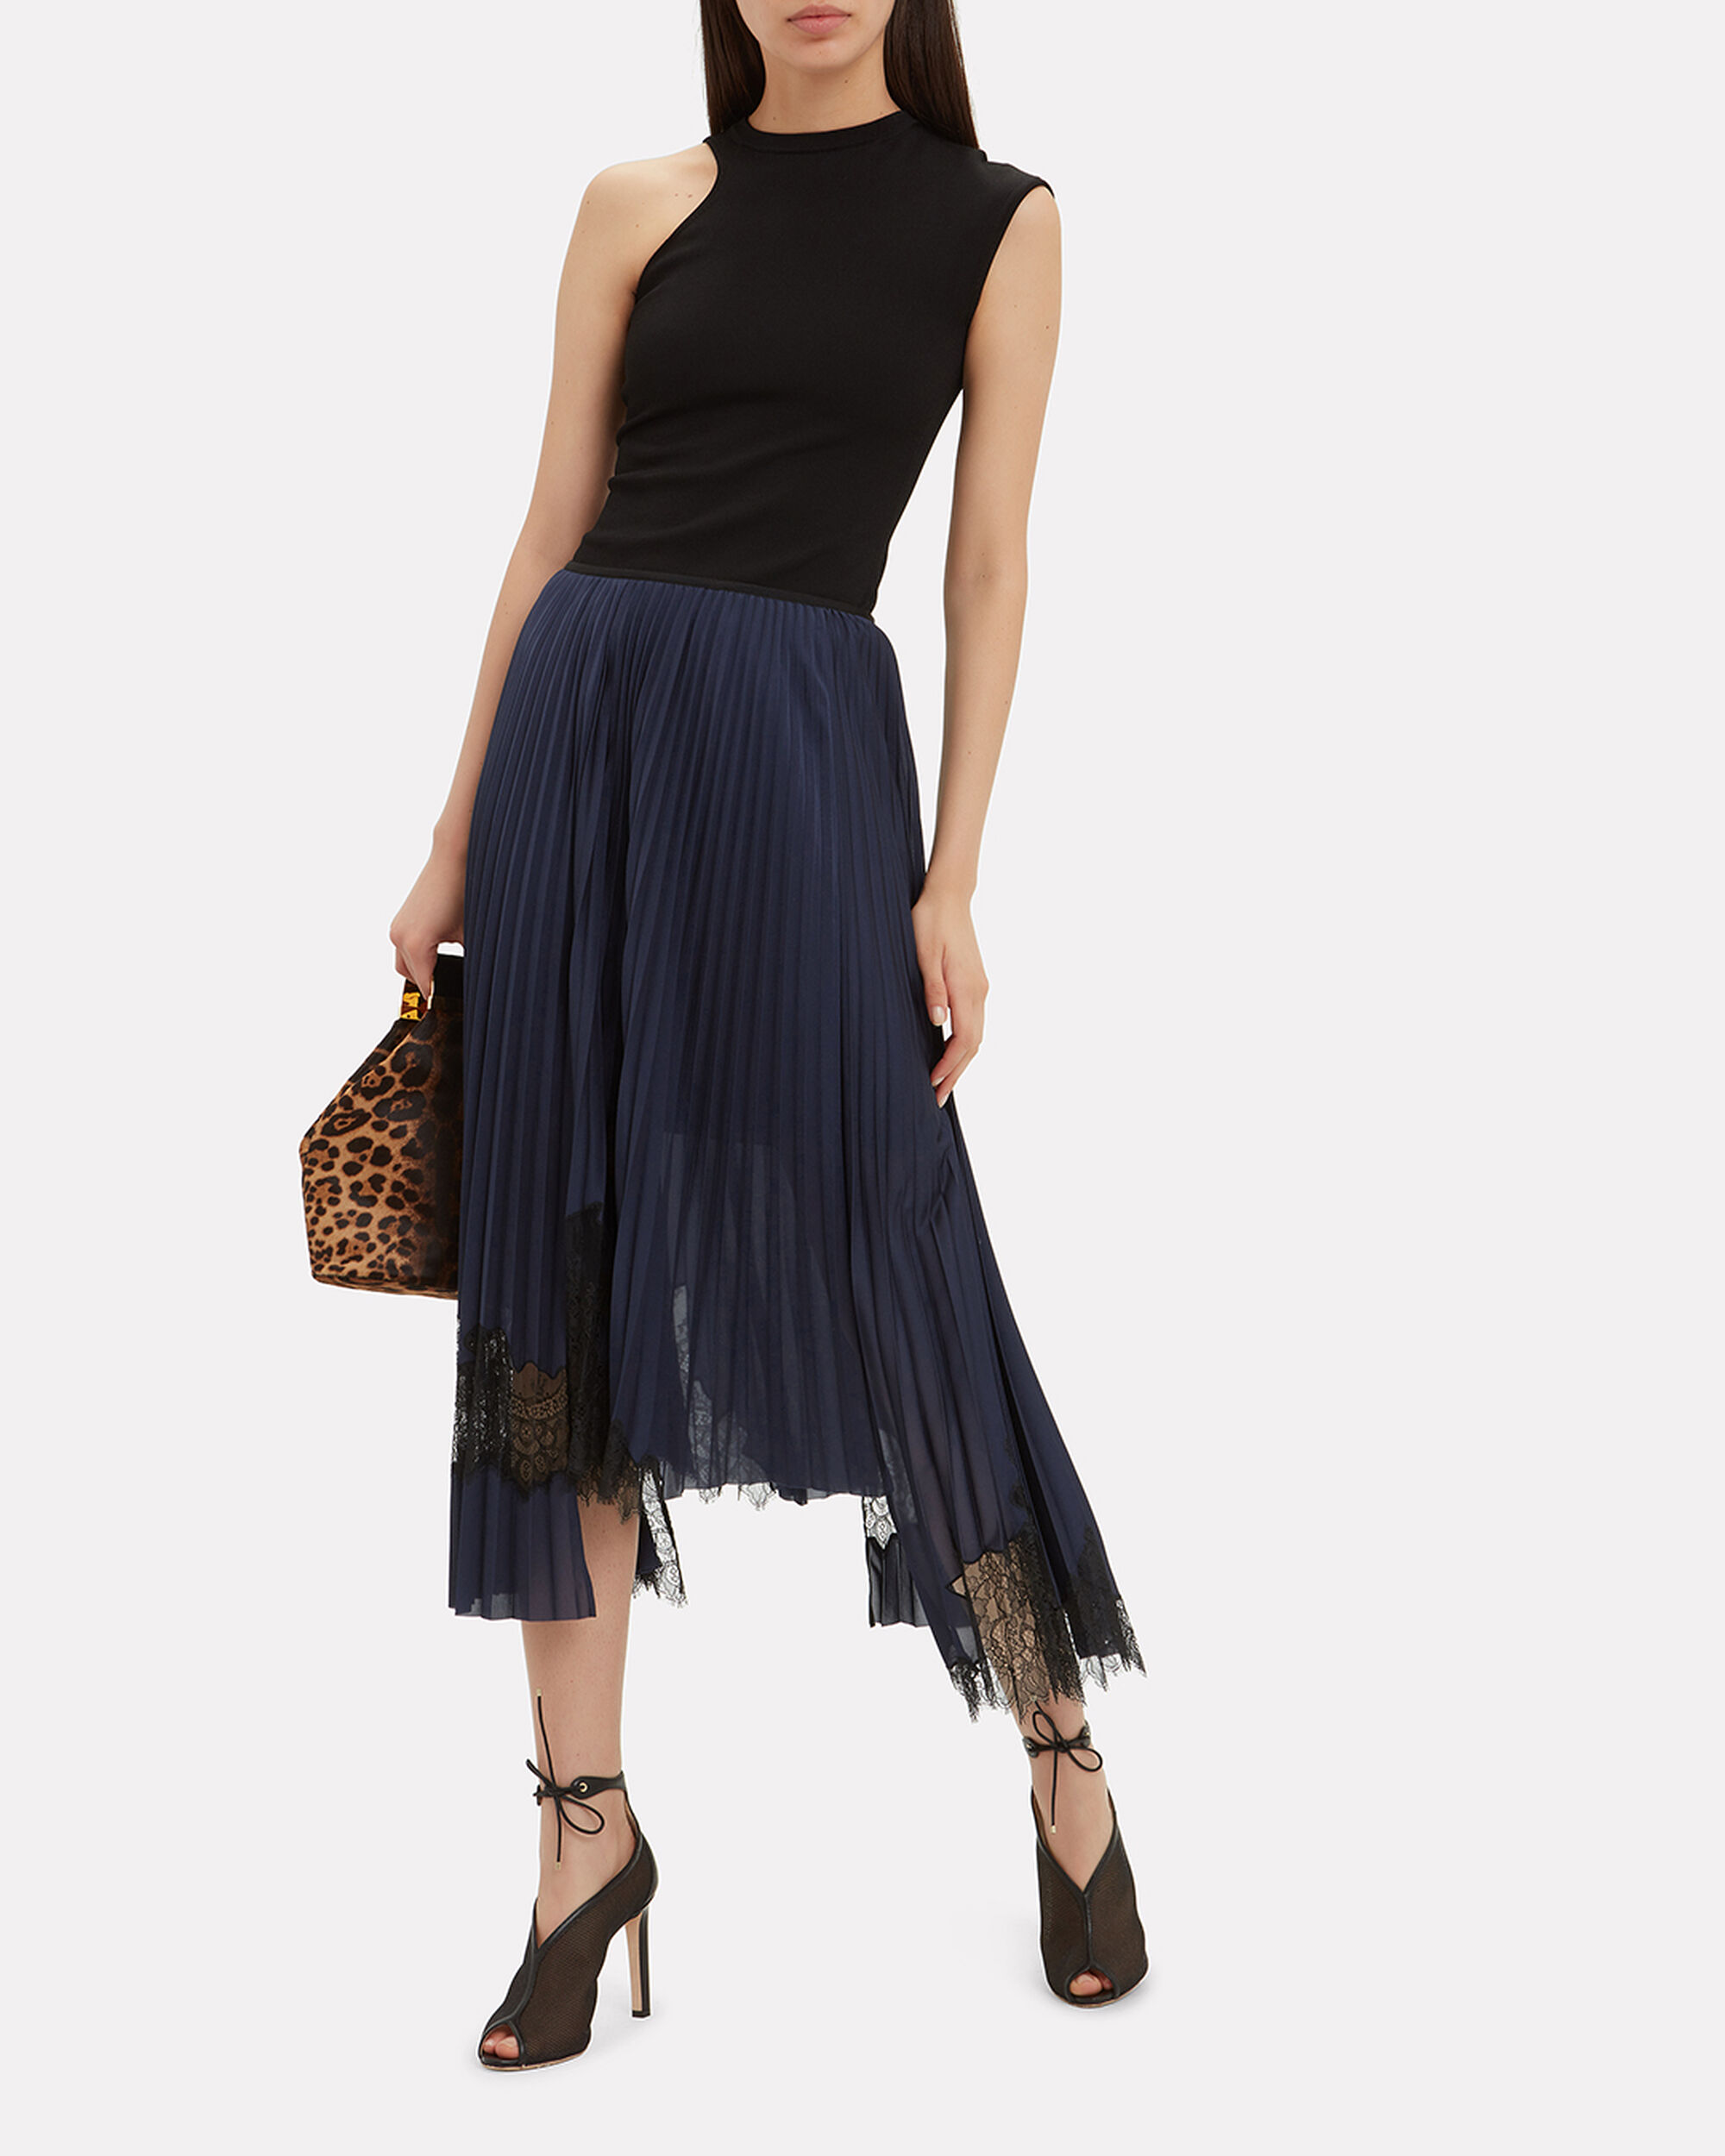 Lace-Trimmed Pleated Skirt, NAVY, hi-res